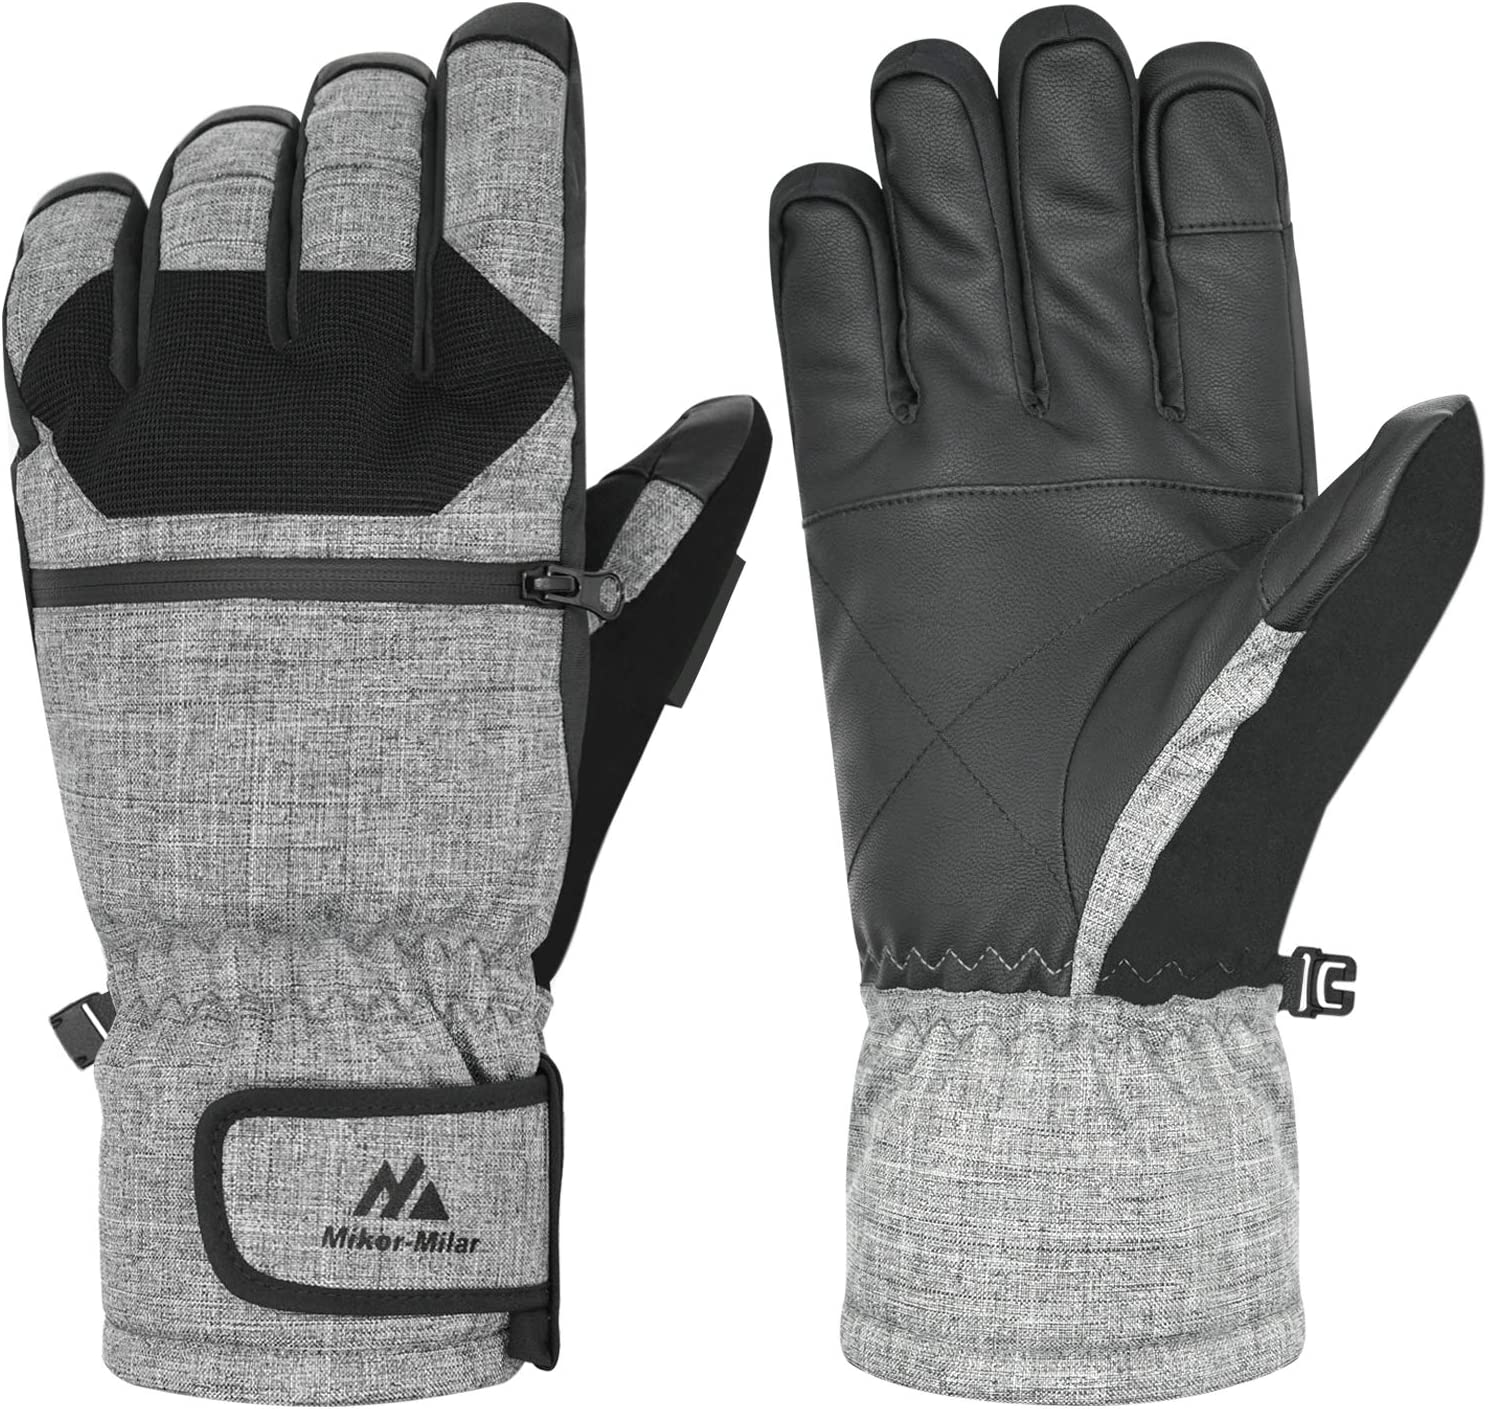 Mikor-Milar Max 78% OFF Year-end gift Cold Weather Gloves 140g Touch Screen Waterproof